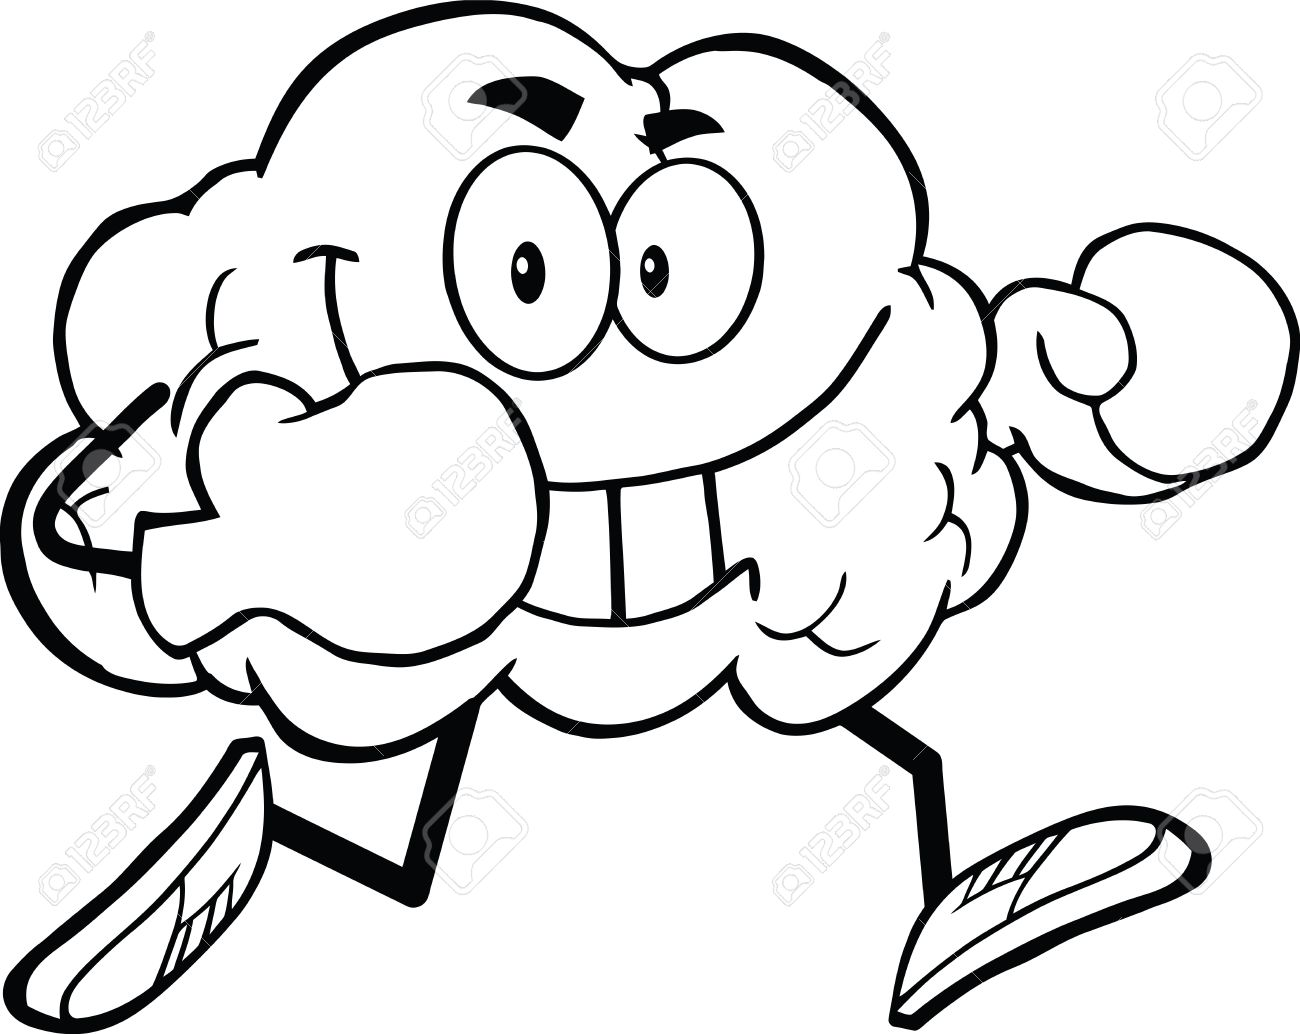 Brain Coloring Page Outlined Brain Cartoon Character Running With Boxing Gloves